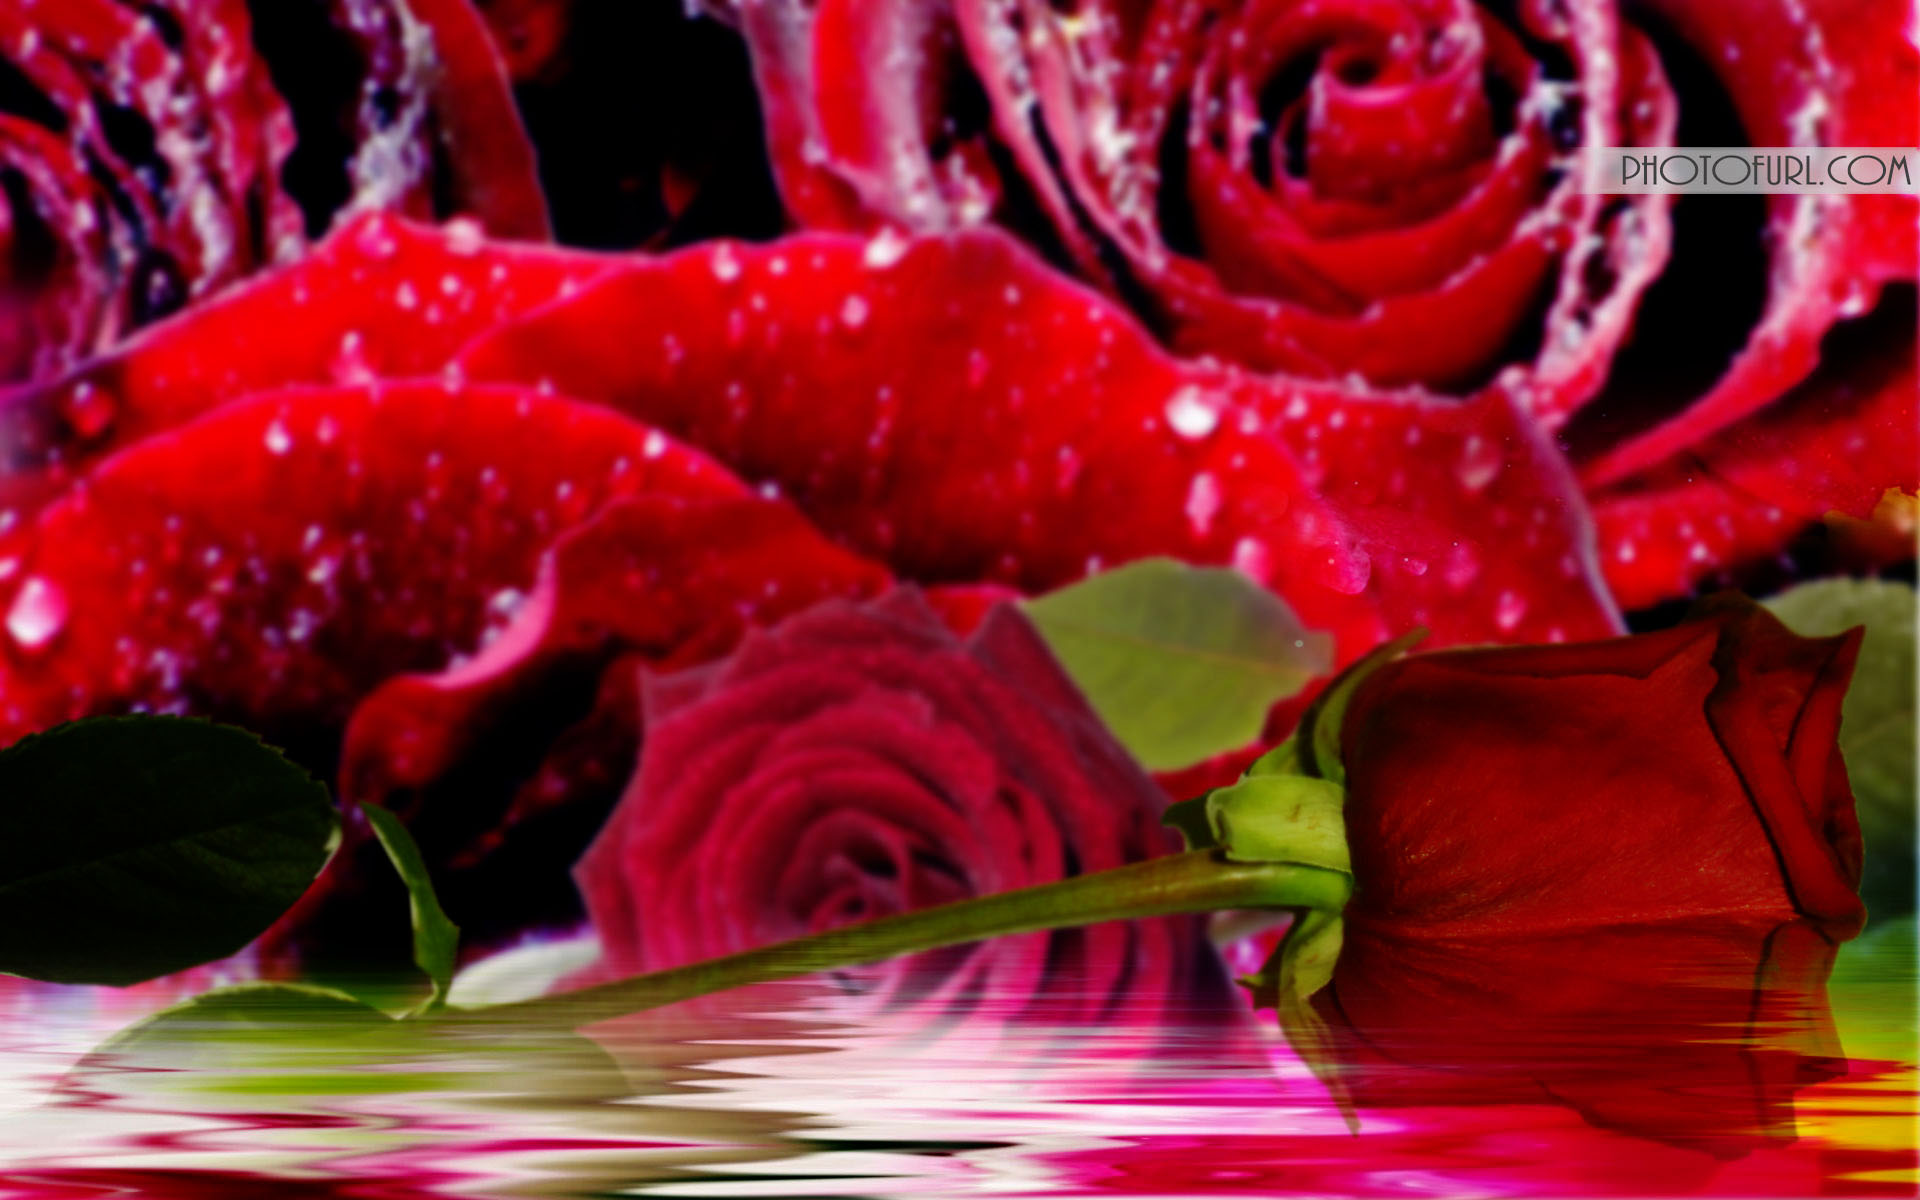 Beautiful Red Rose Wallpapers 1920x1200